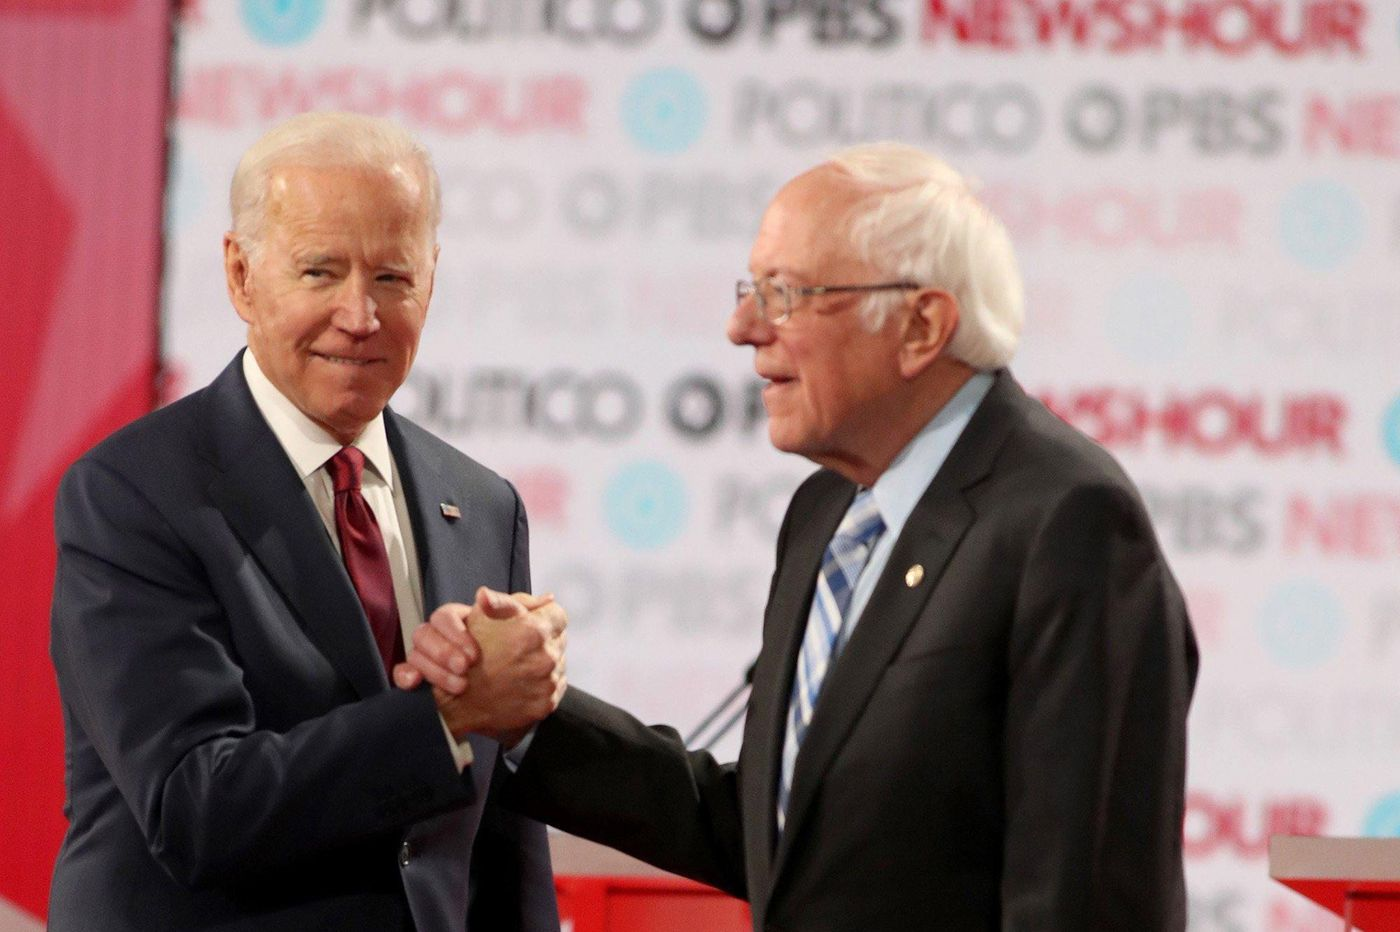 Who's winning the 2020 money race in Pennsylvania and by how much